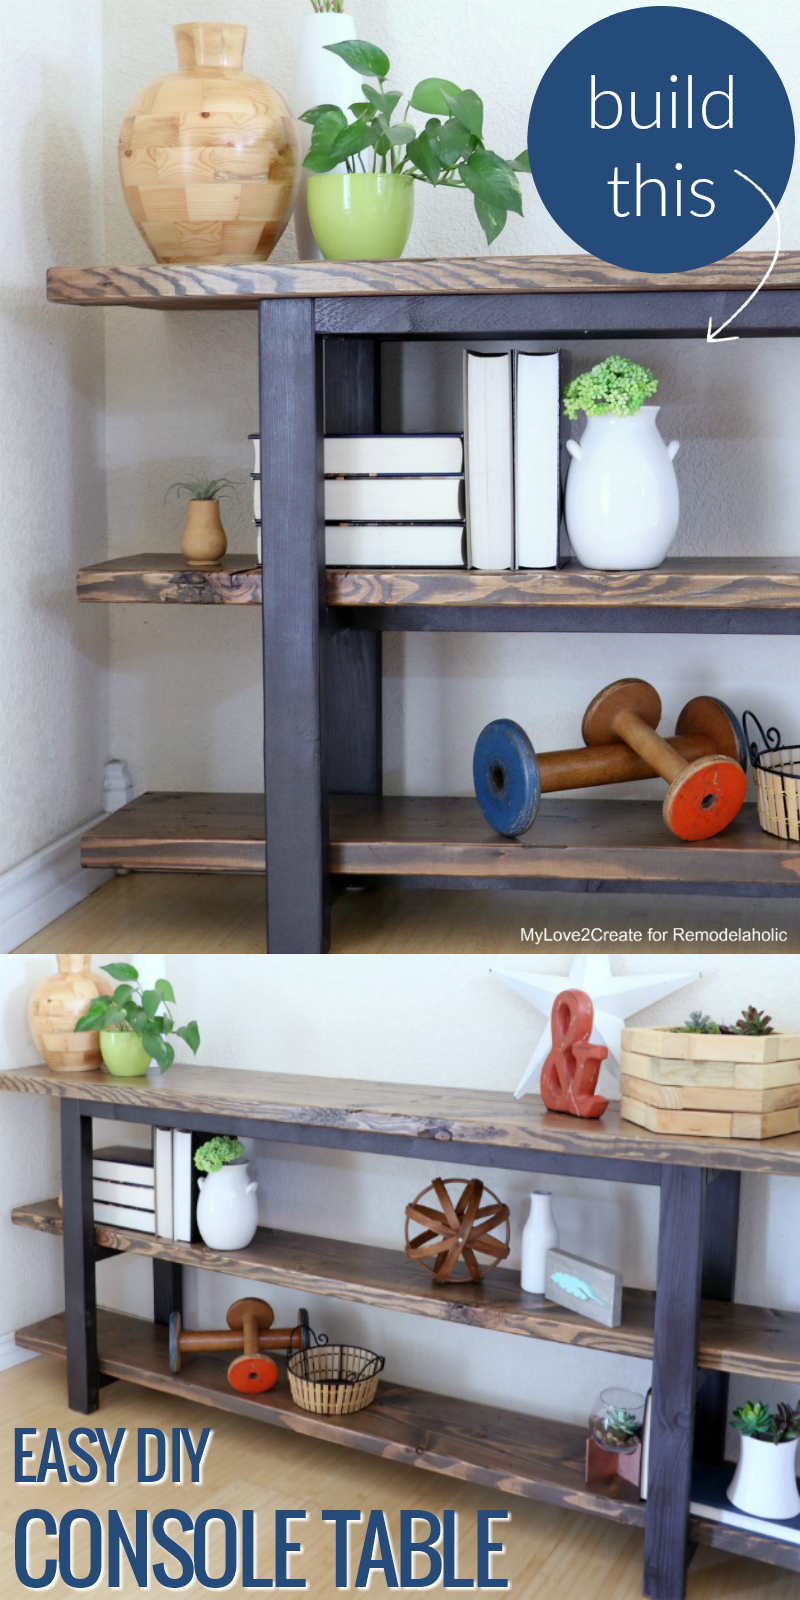 Remodelaholic pottery barn inspired modern rustic console table how to build an easy diy modern rustic console table inspired by pottery barn tutorial geotapseo Choice Image